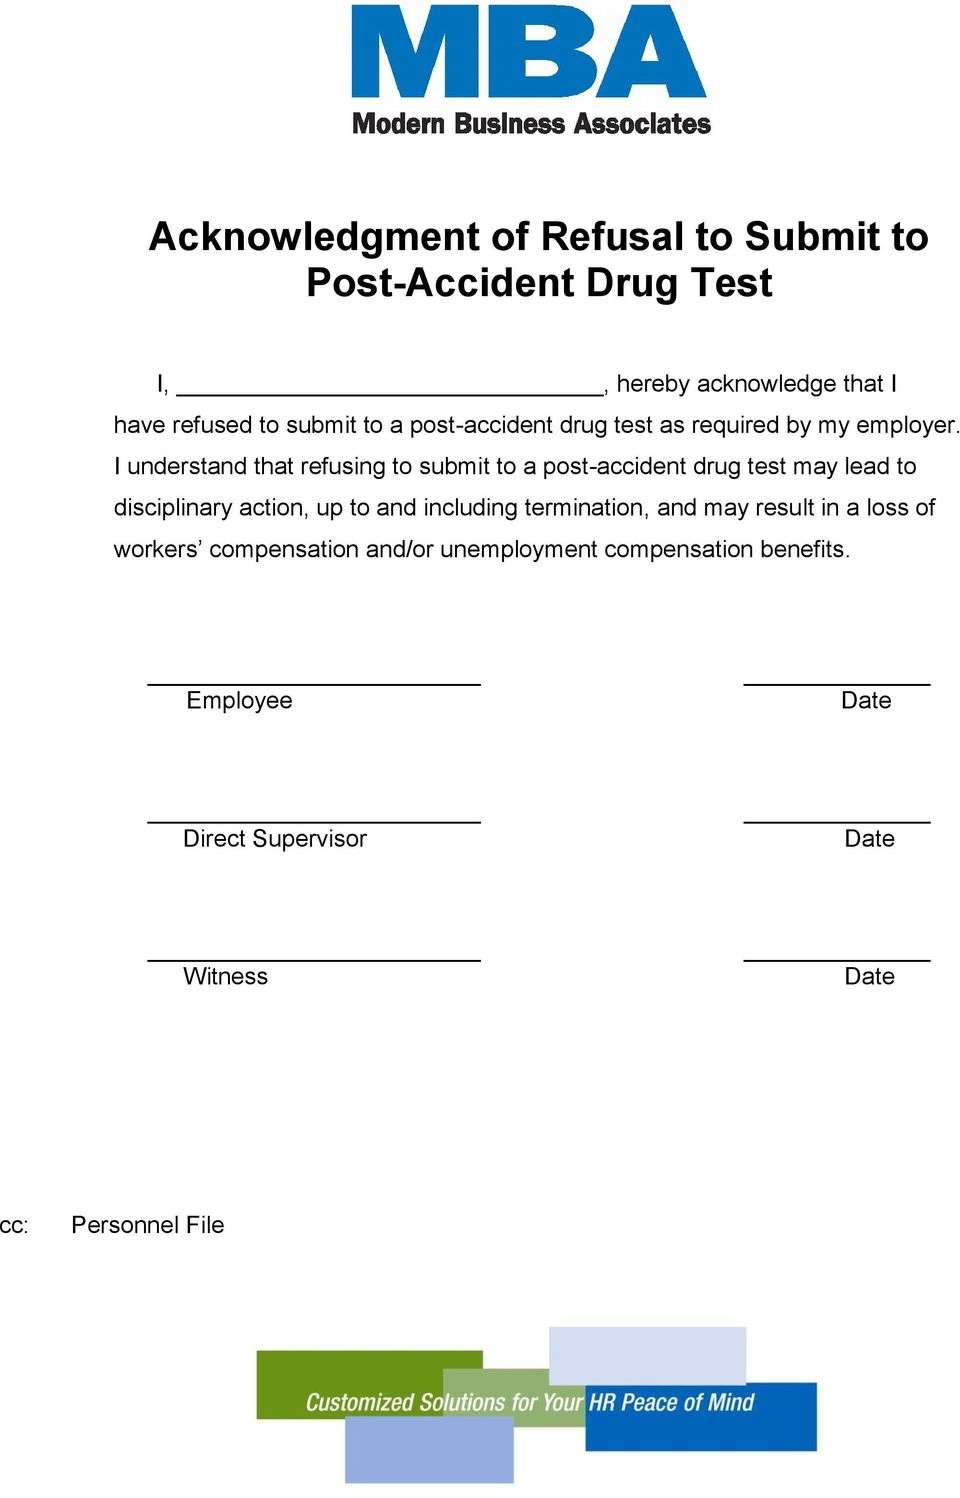 I understand that refusing to submit to a post-accident drug test may lead to disciplinary action, up to and